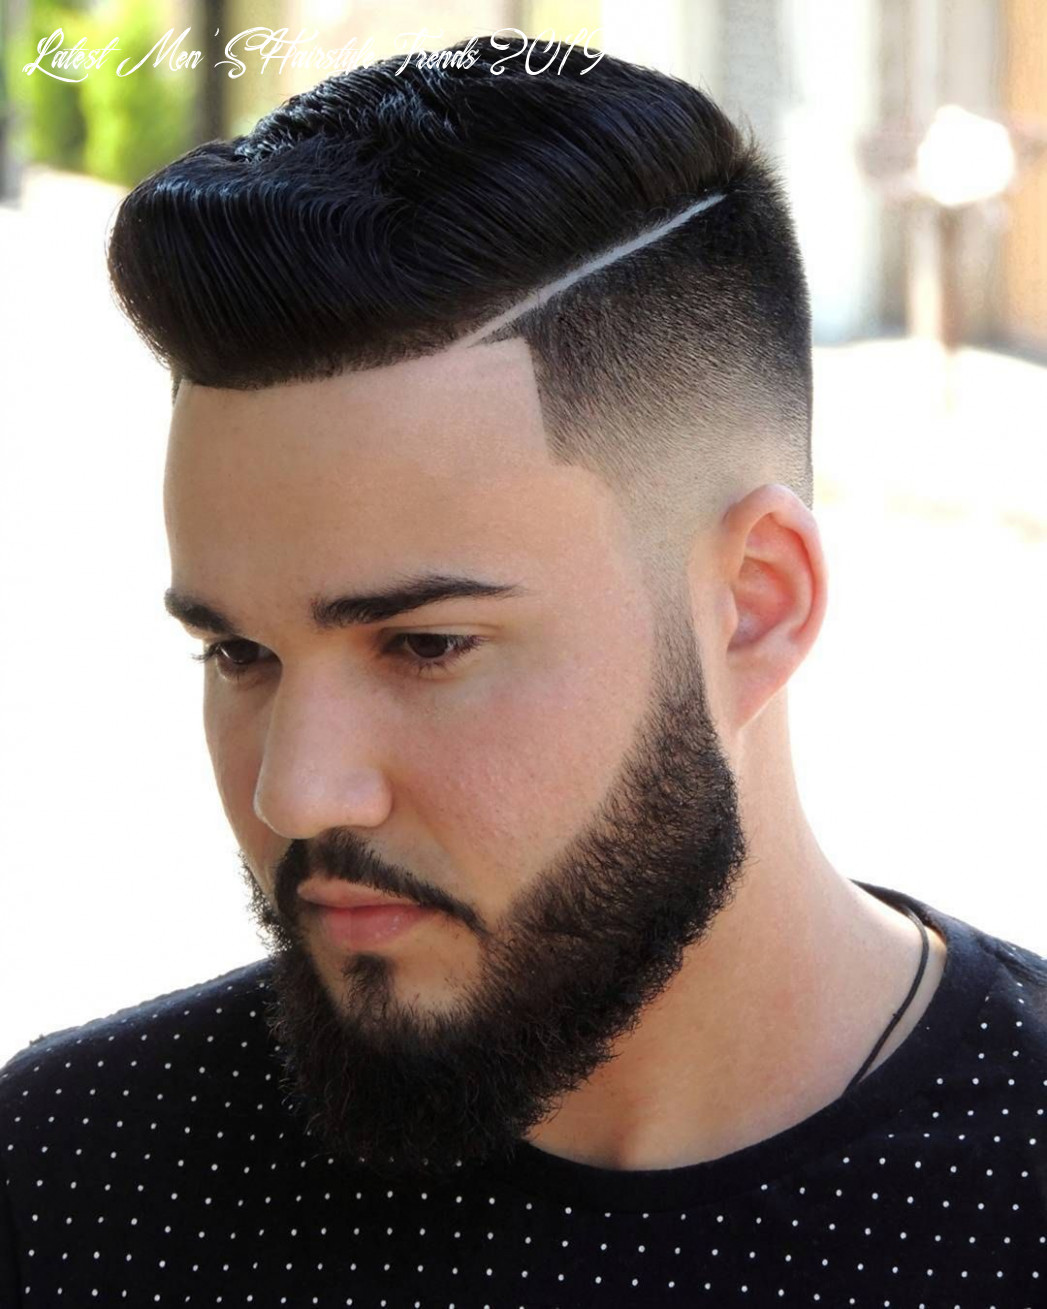 11 classic short hairstyles ideas for cool men | mens hairstyles